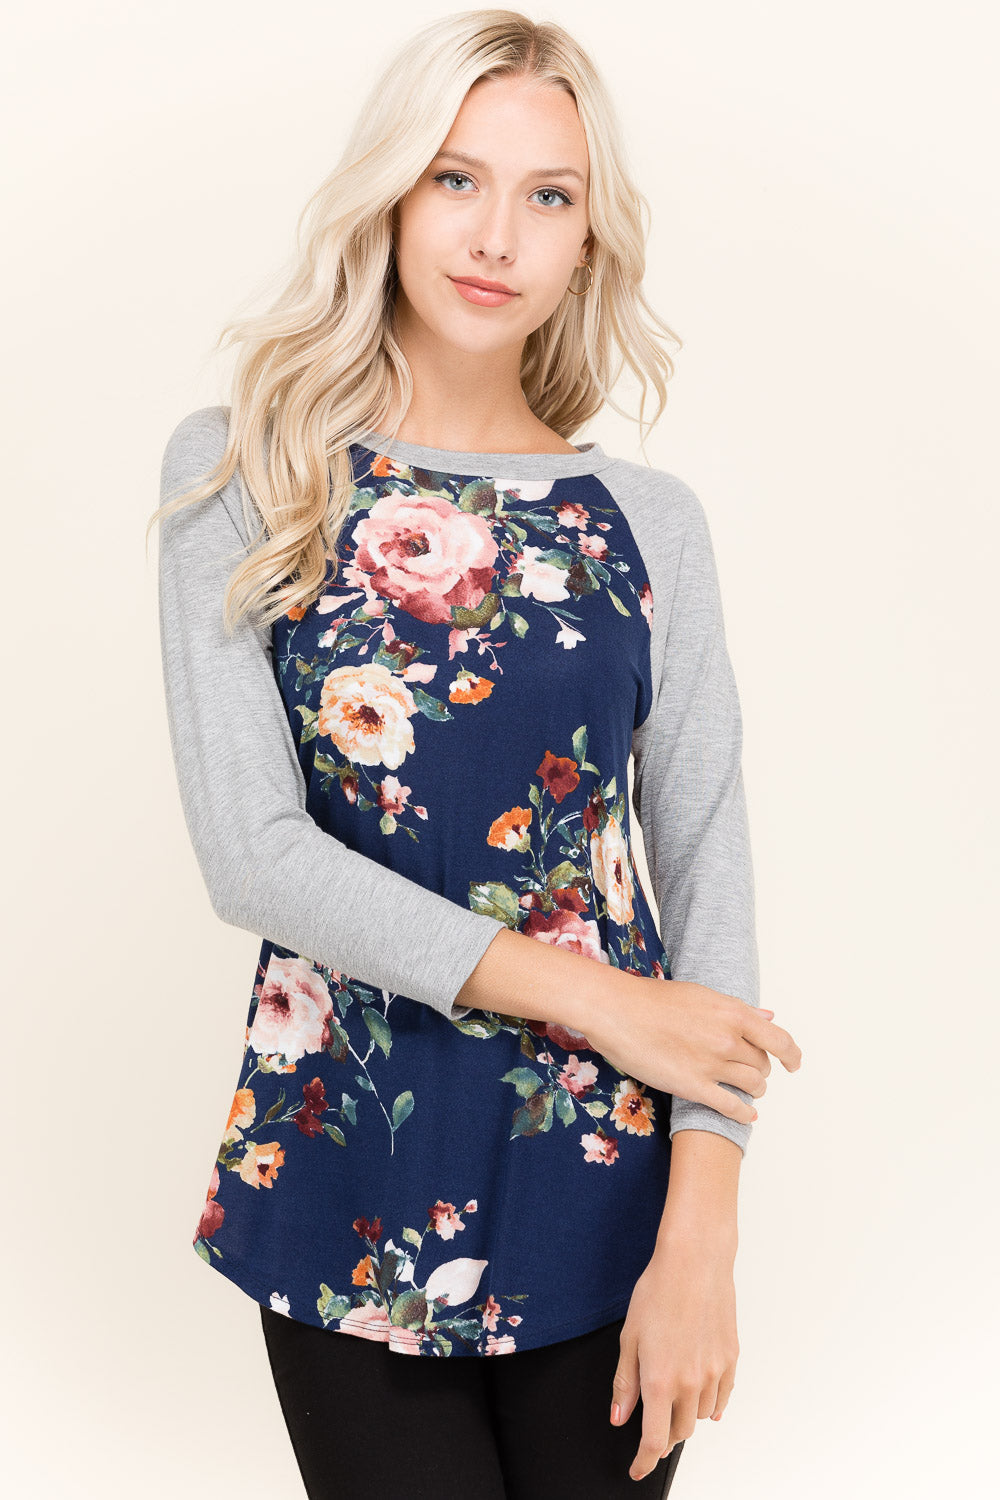 Floral Baseball Tee with Gray Sleeves- Brand New